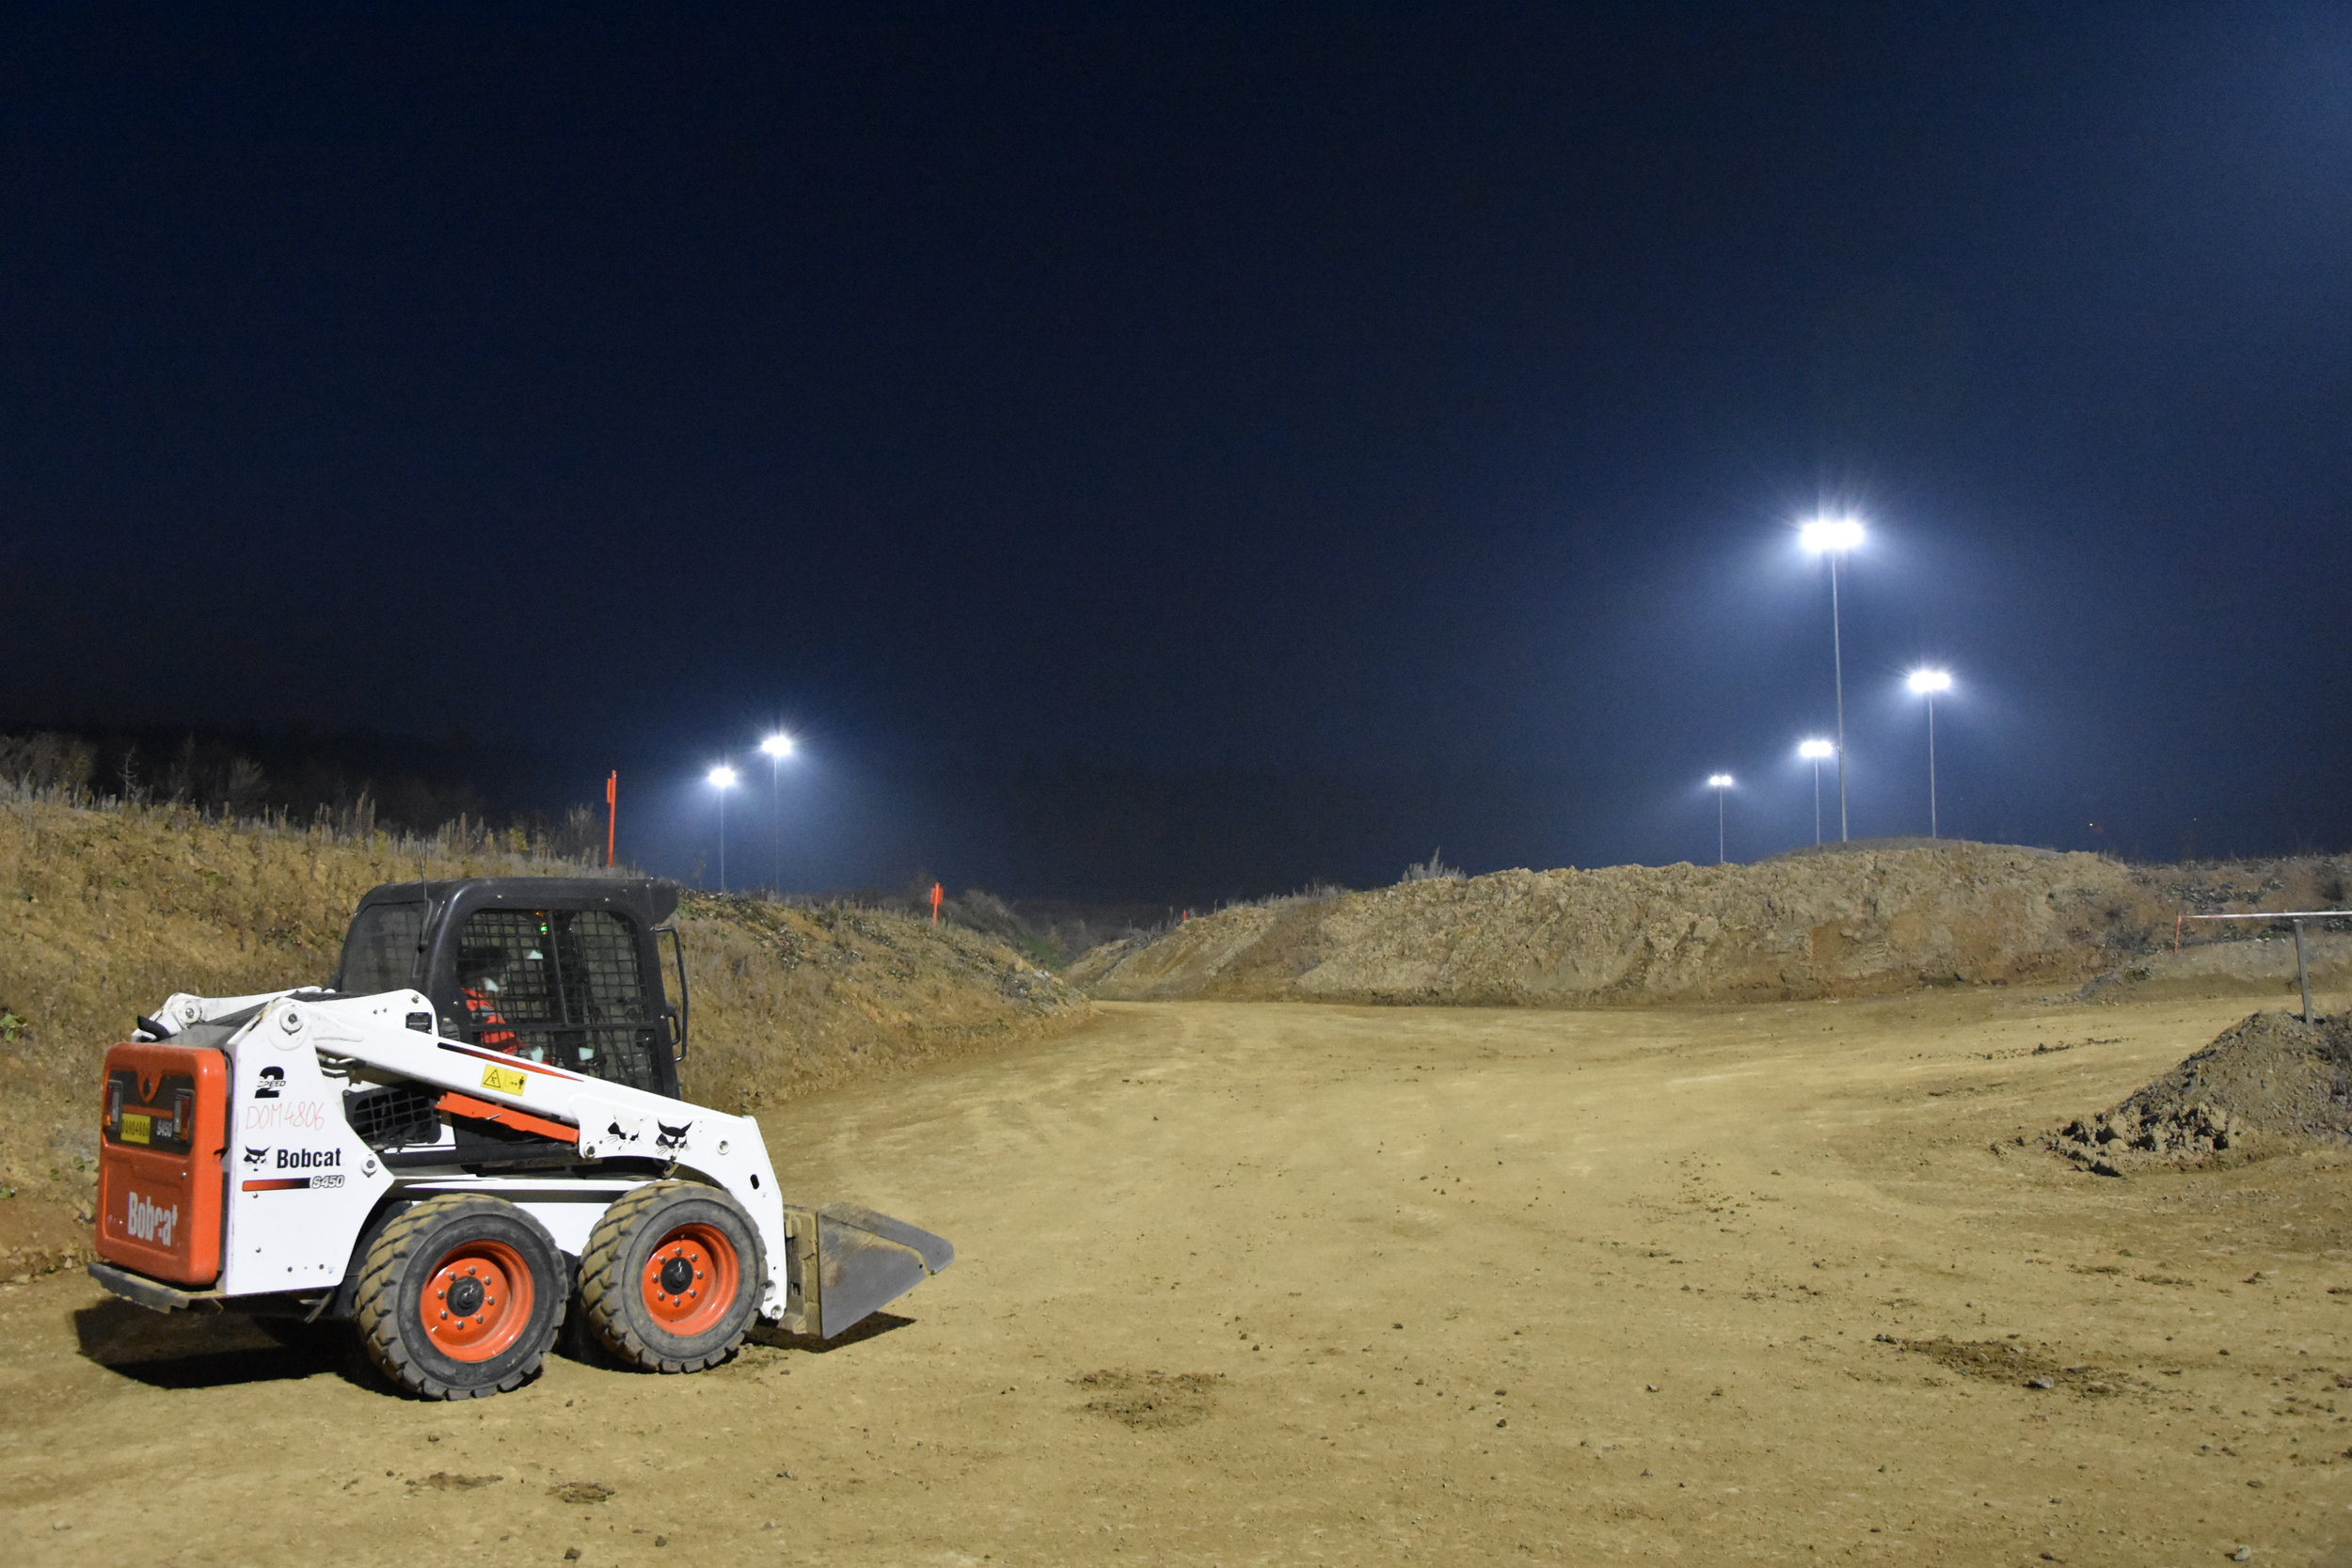 INDUSTRY LIGHTING - Whether it is an airport, shipping port or a mine site, our lighting solutions adhere to all strict lighting codes, making us the leaders in the field